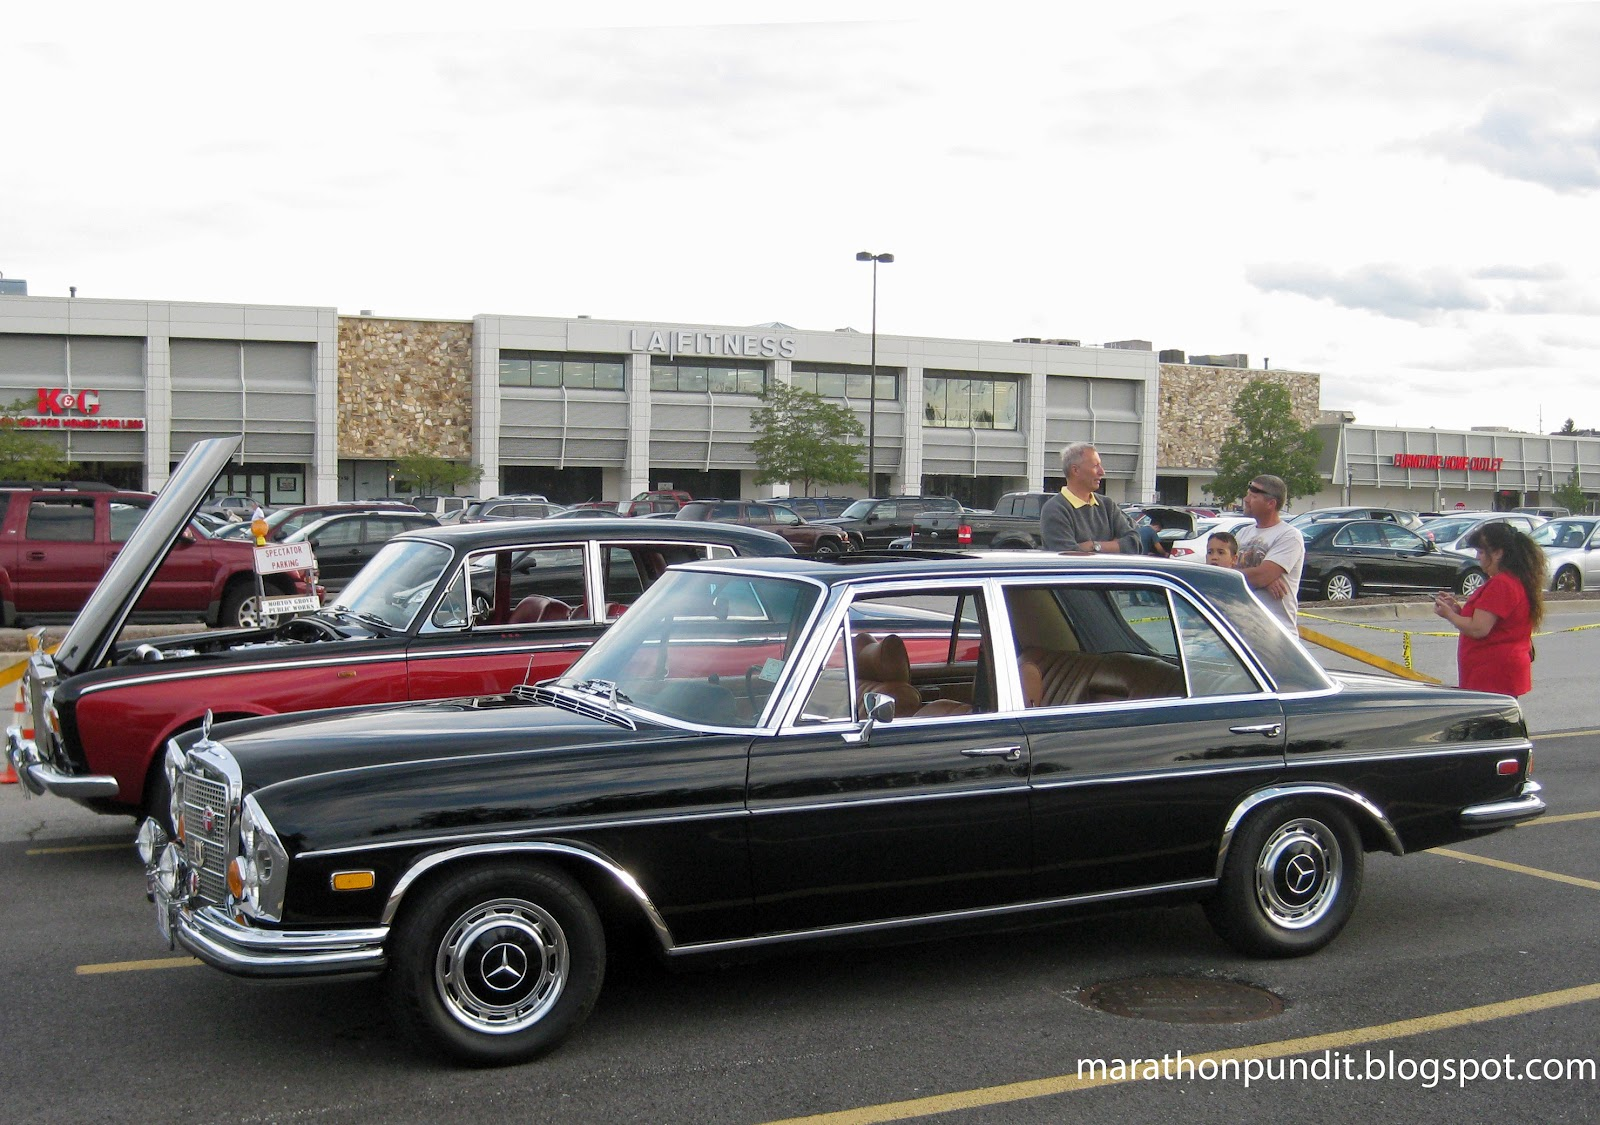 Marathon pundit photos morton grove classic car show 8 for Mercedes benz top of the line